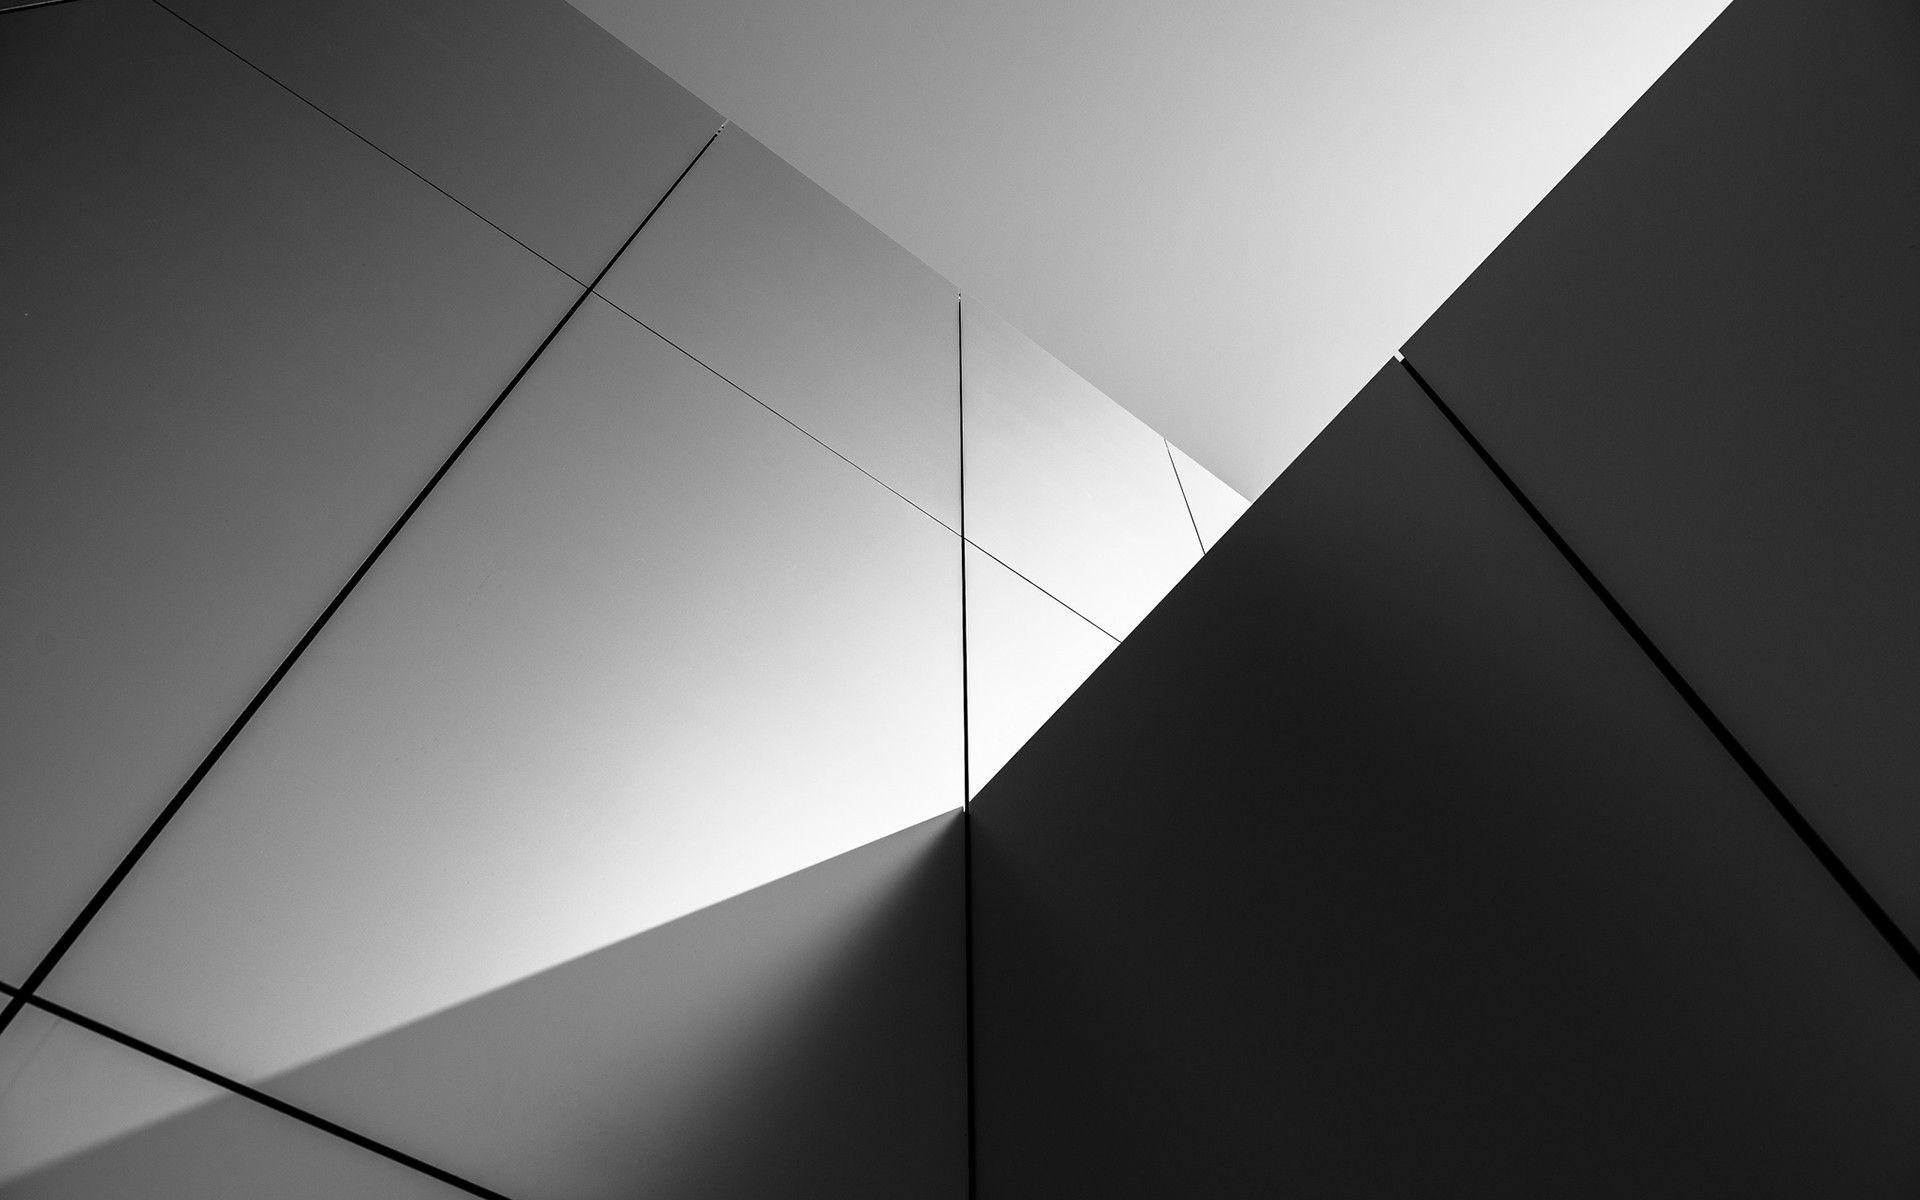 Black and white abstract wallpapers wallpaper cave for Black and white wallpaper for walls